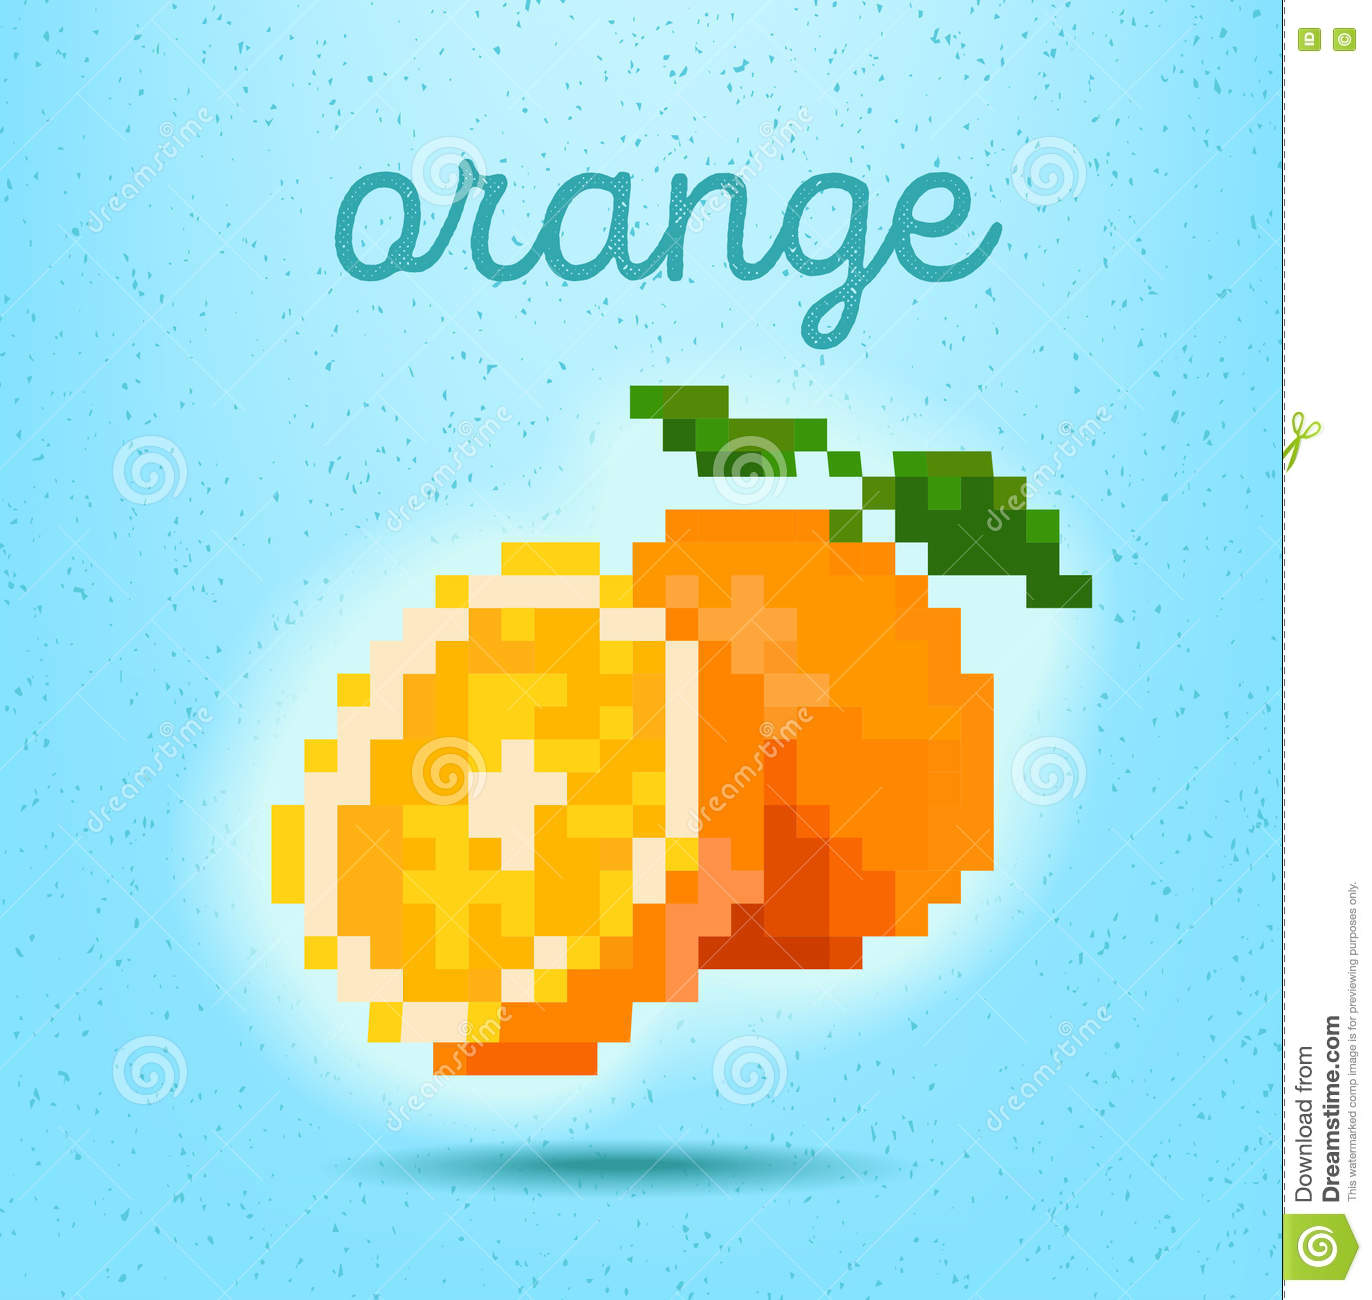 Pixel-art Style Poster With Orange Fruit Citrus On Light